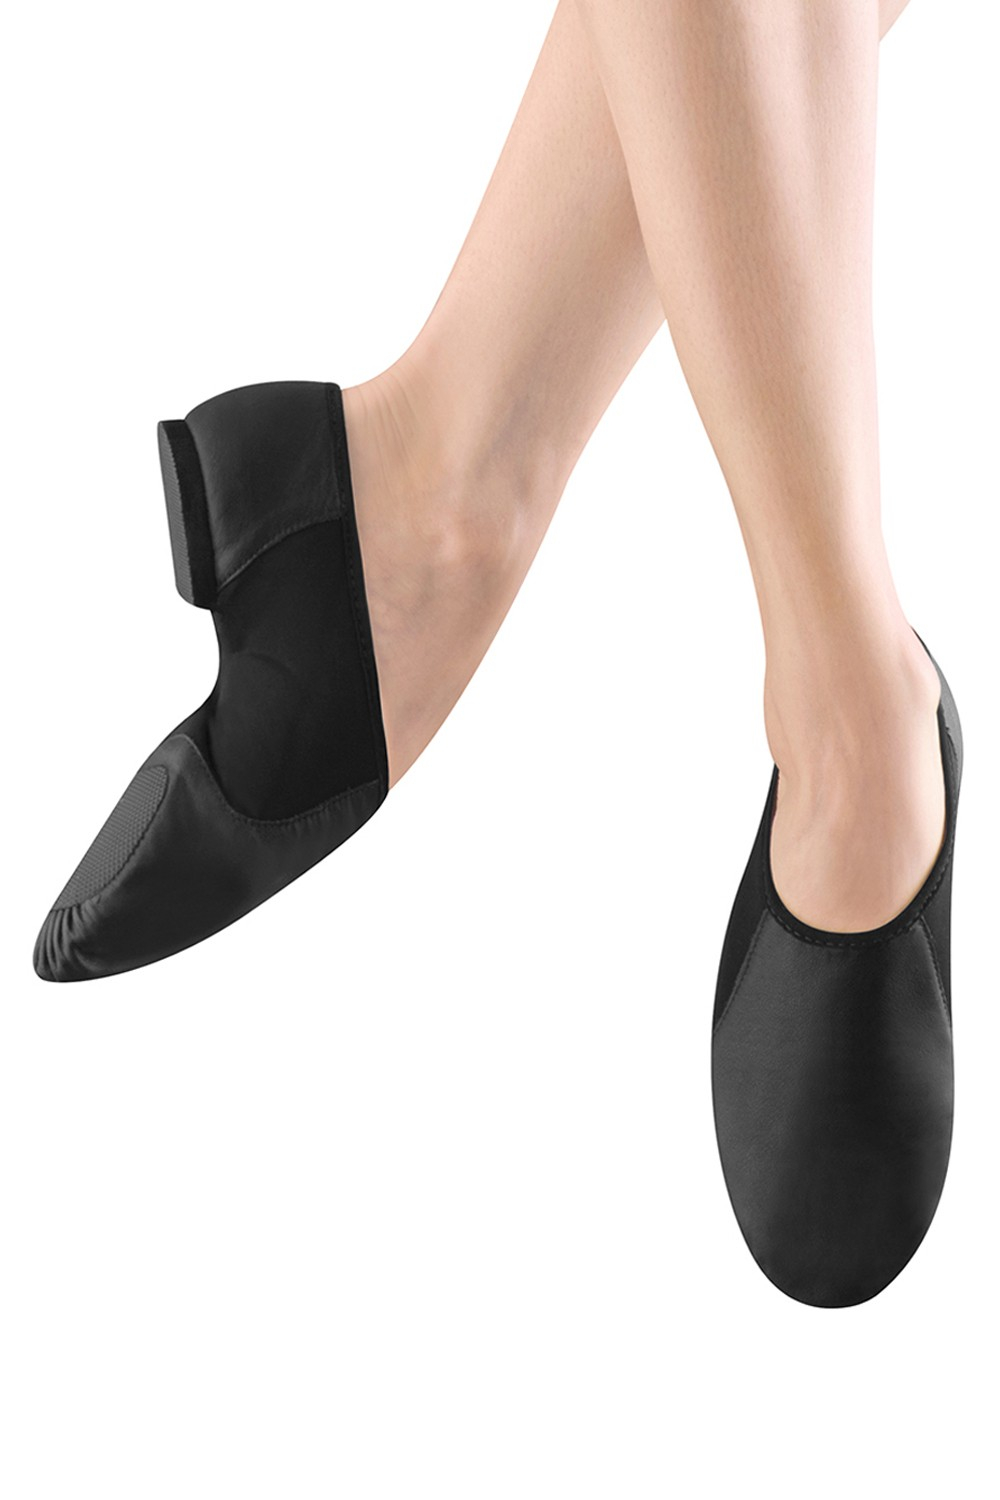 Neo-flex Slip On Women's Jazz Shoes